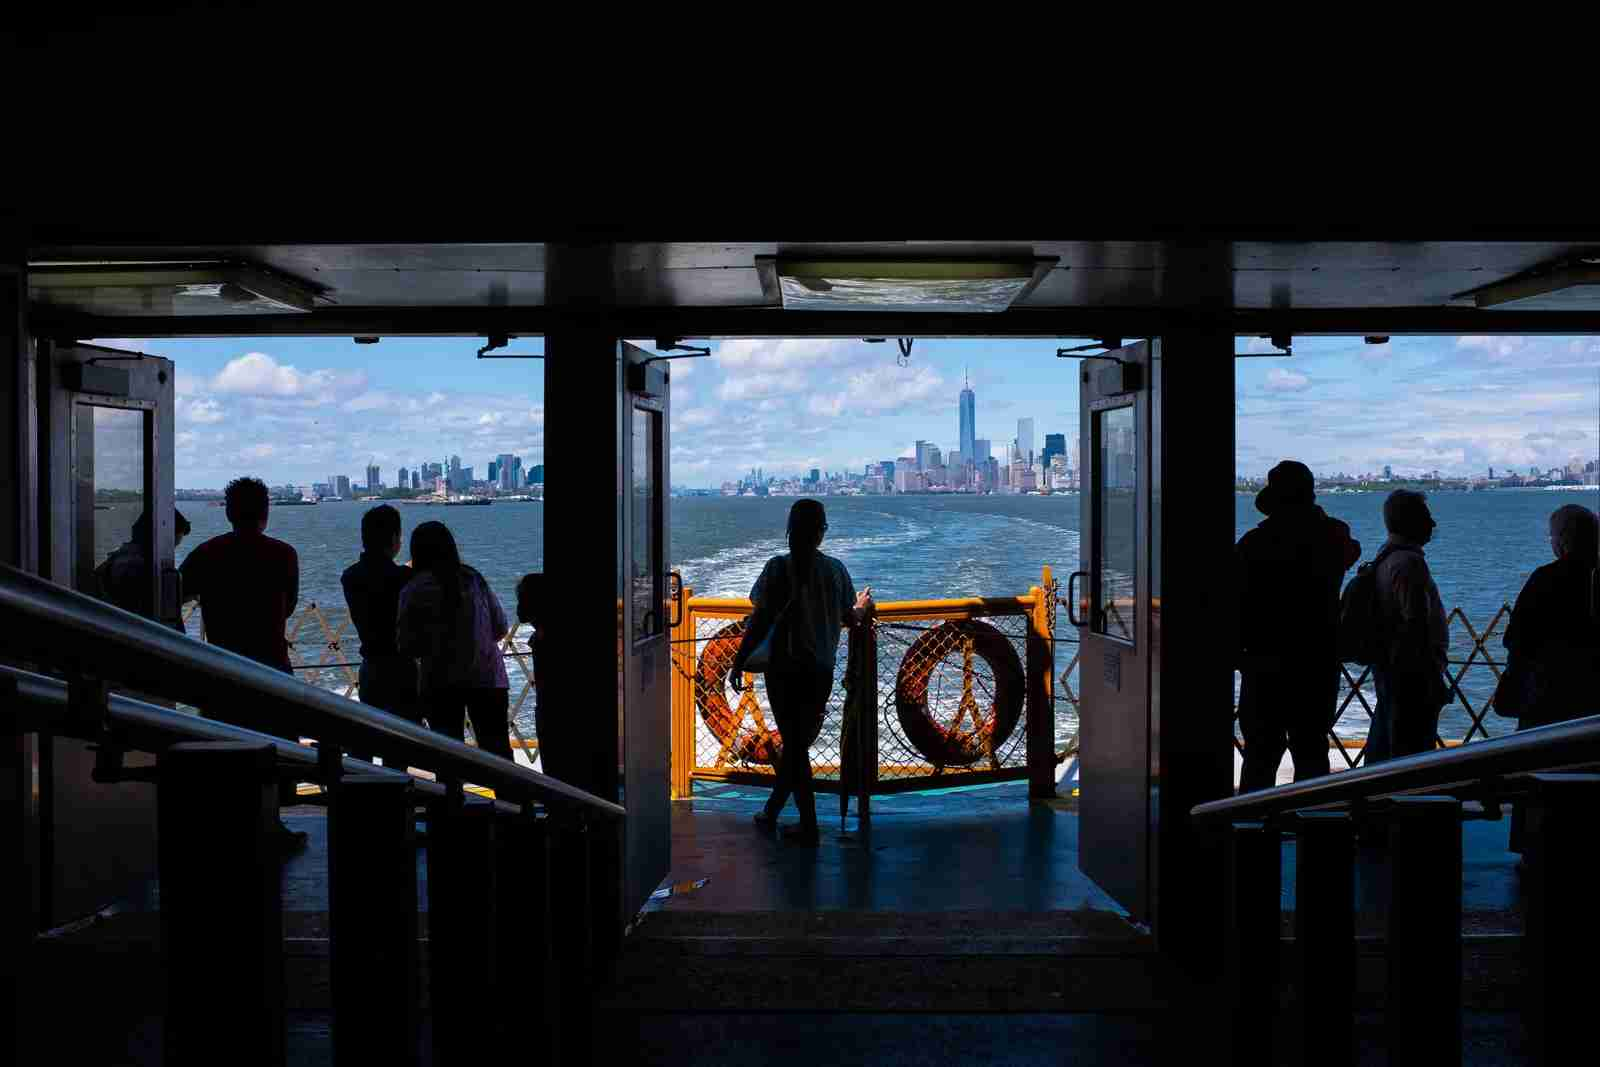 The Staten Island Ferry. (Photo by Brian Eden/Getty Images)